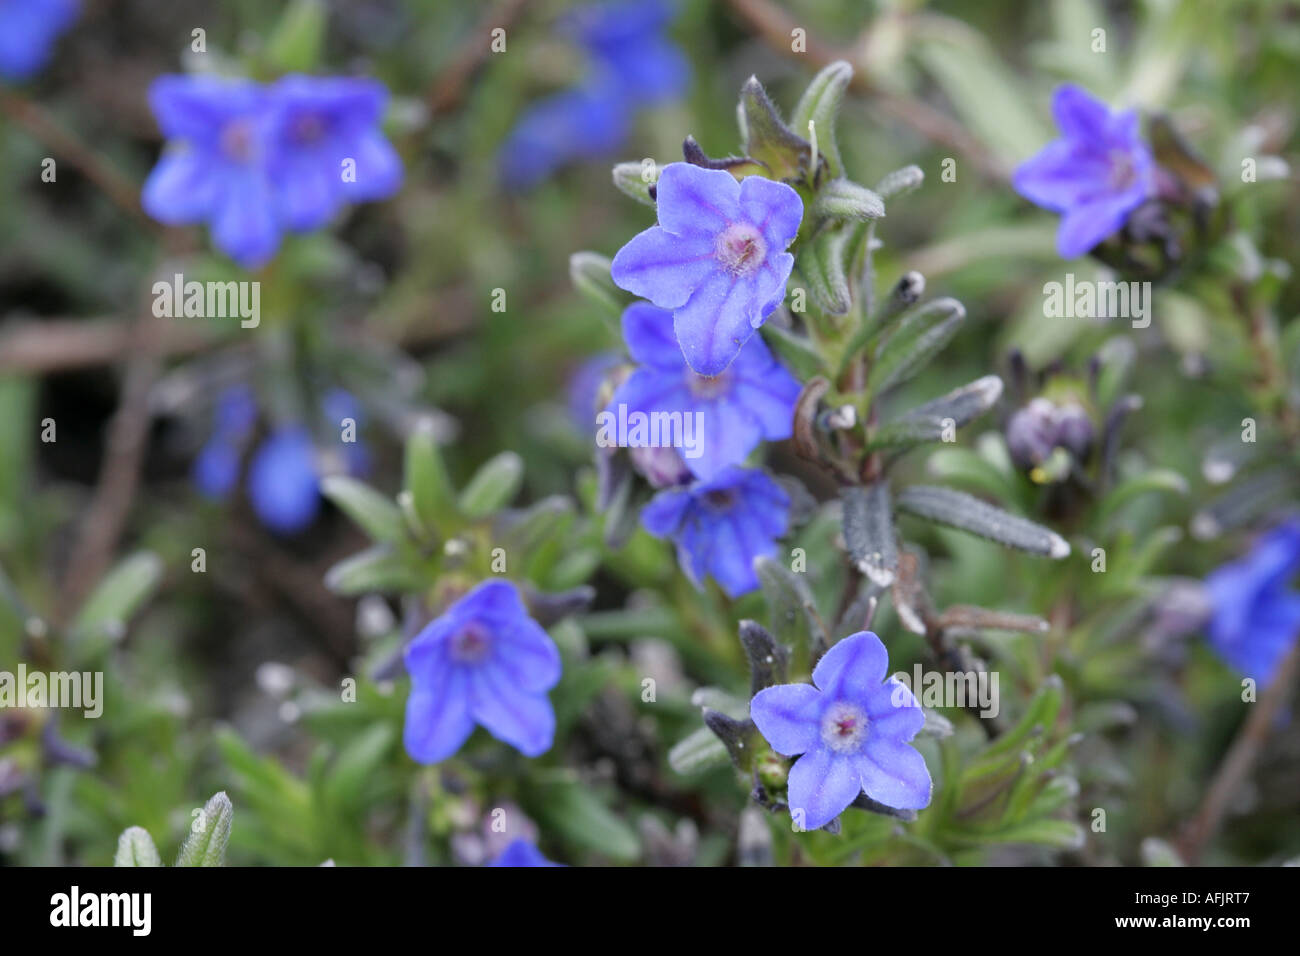 Cynoglossum amabile tall chinese forget me not forget me not plant cynoglossum amabile tall chinese forget me not forget me not plant with five 5 petals and blue flowers izmirmasajfo